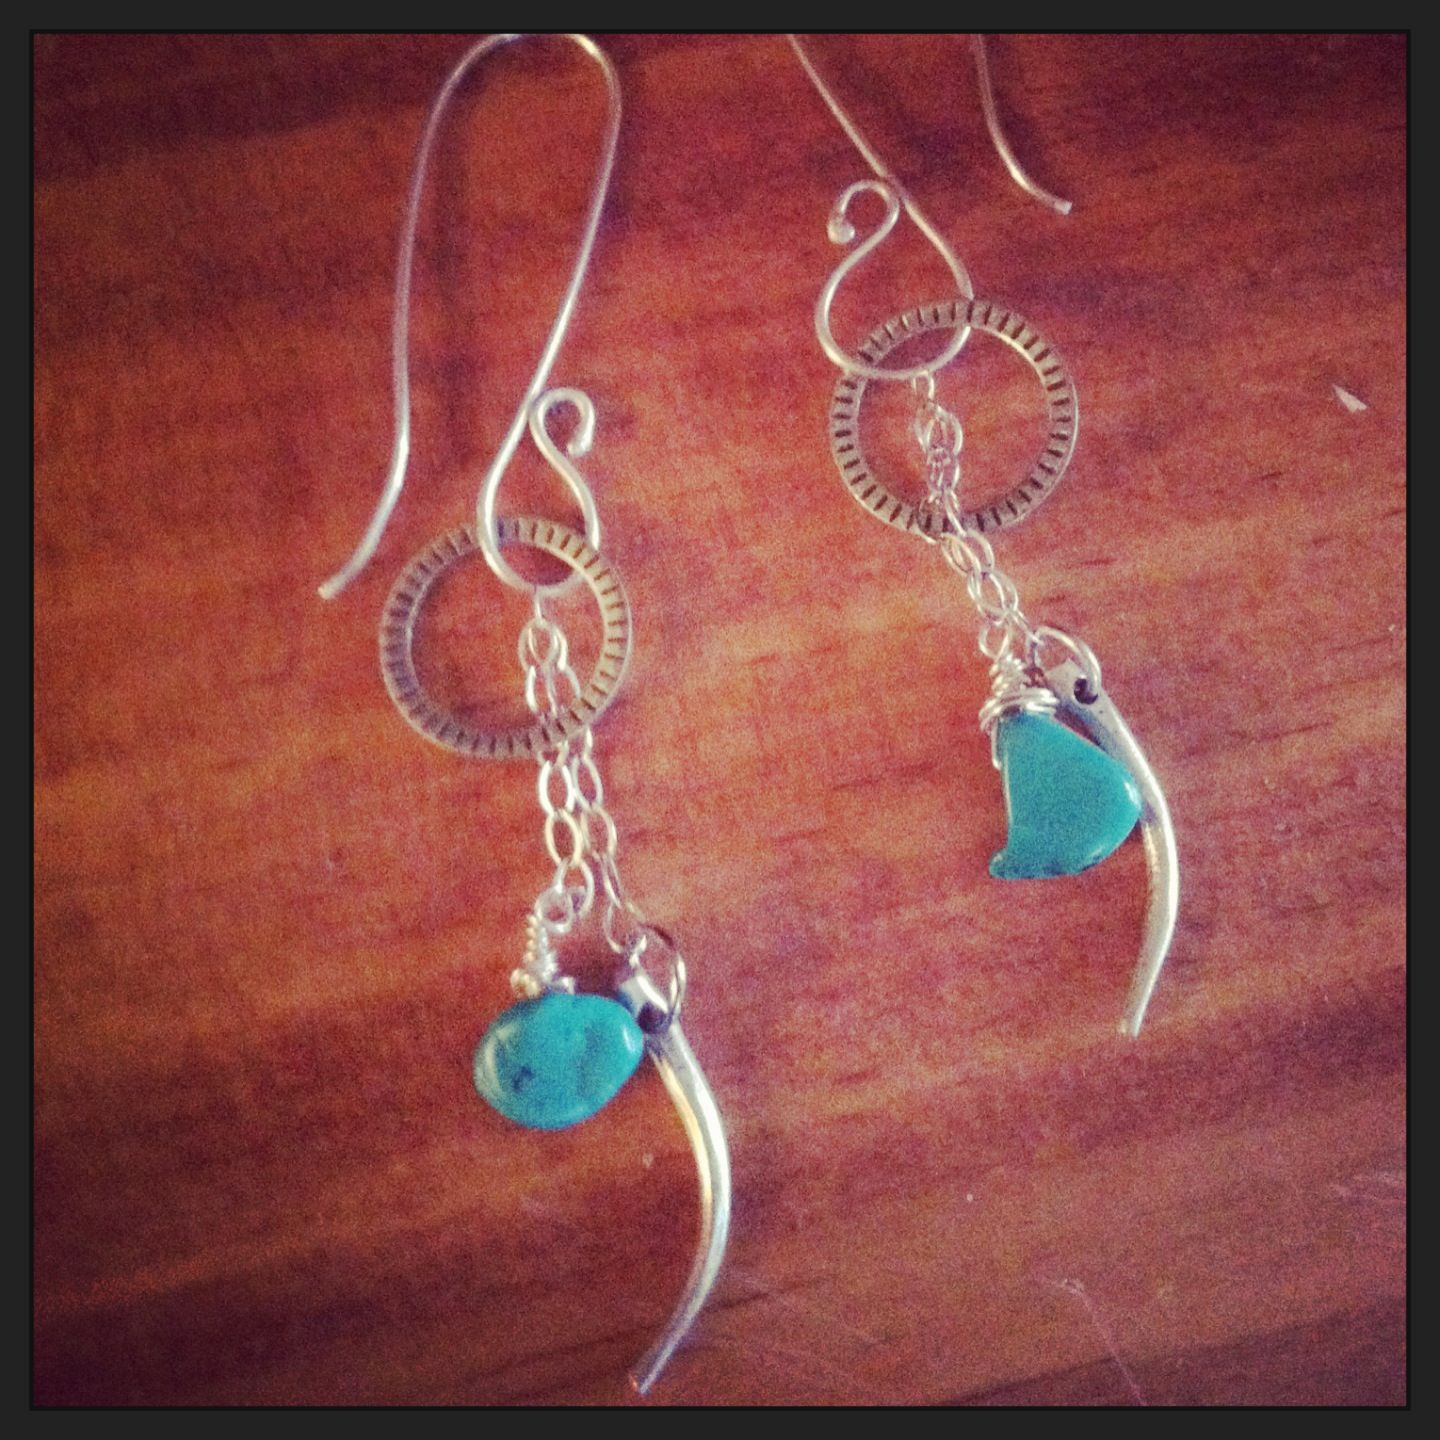 Hand made jewelry in Crested Butte, Colorado